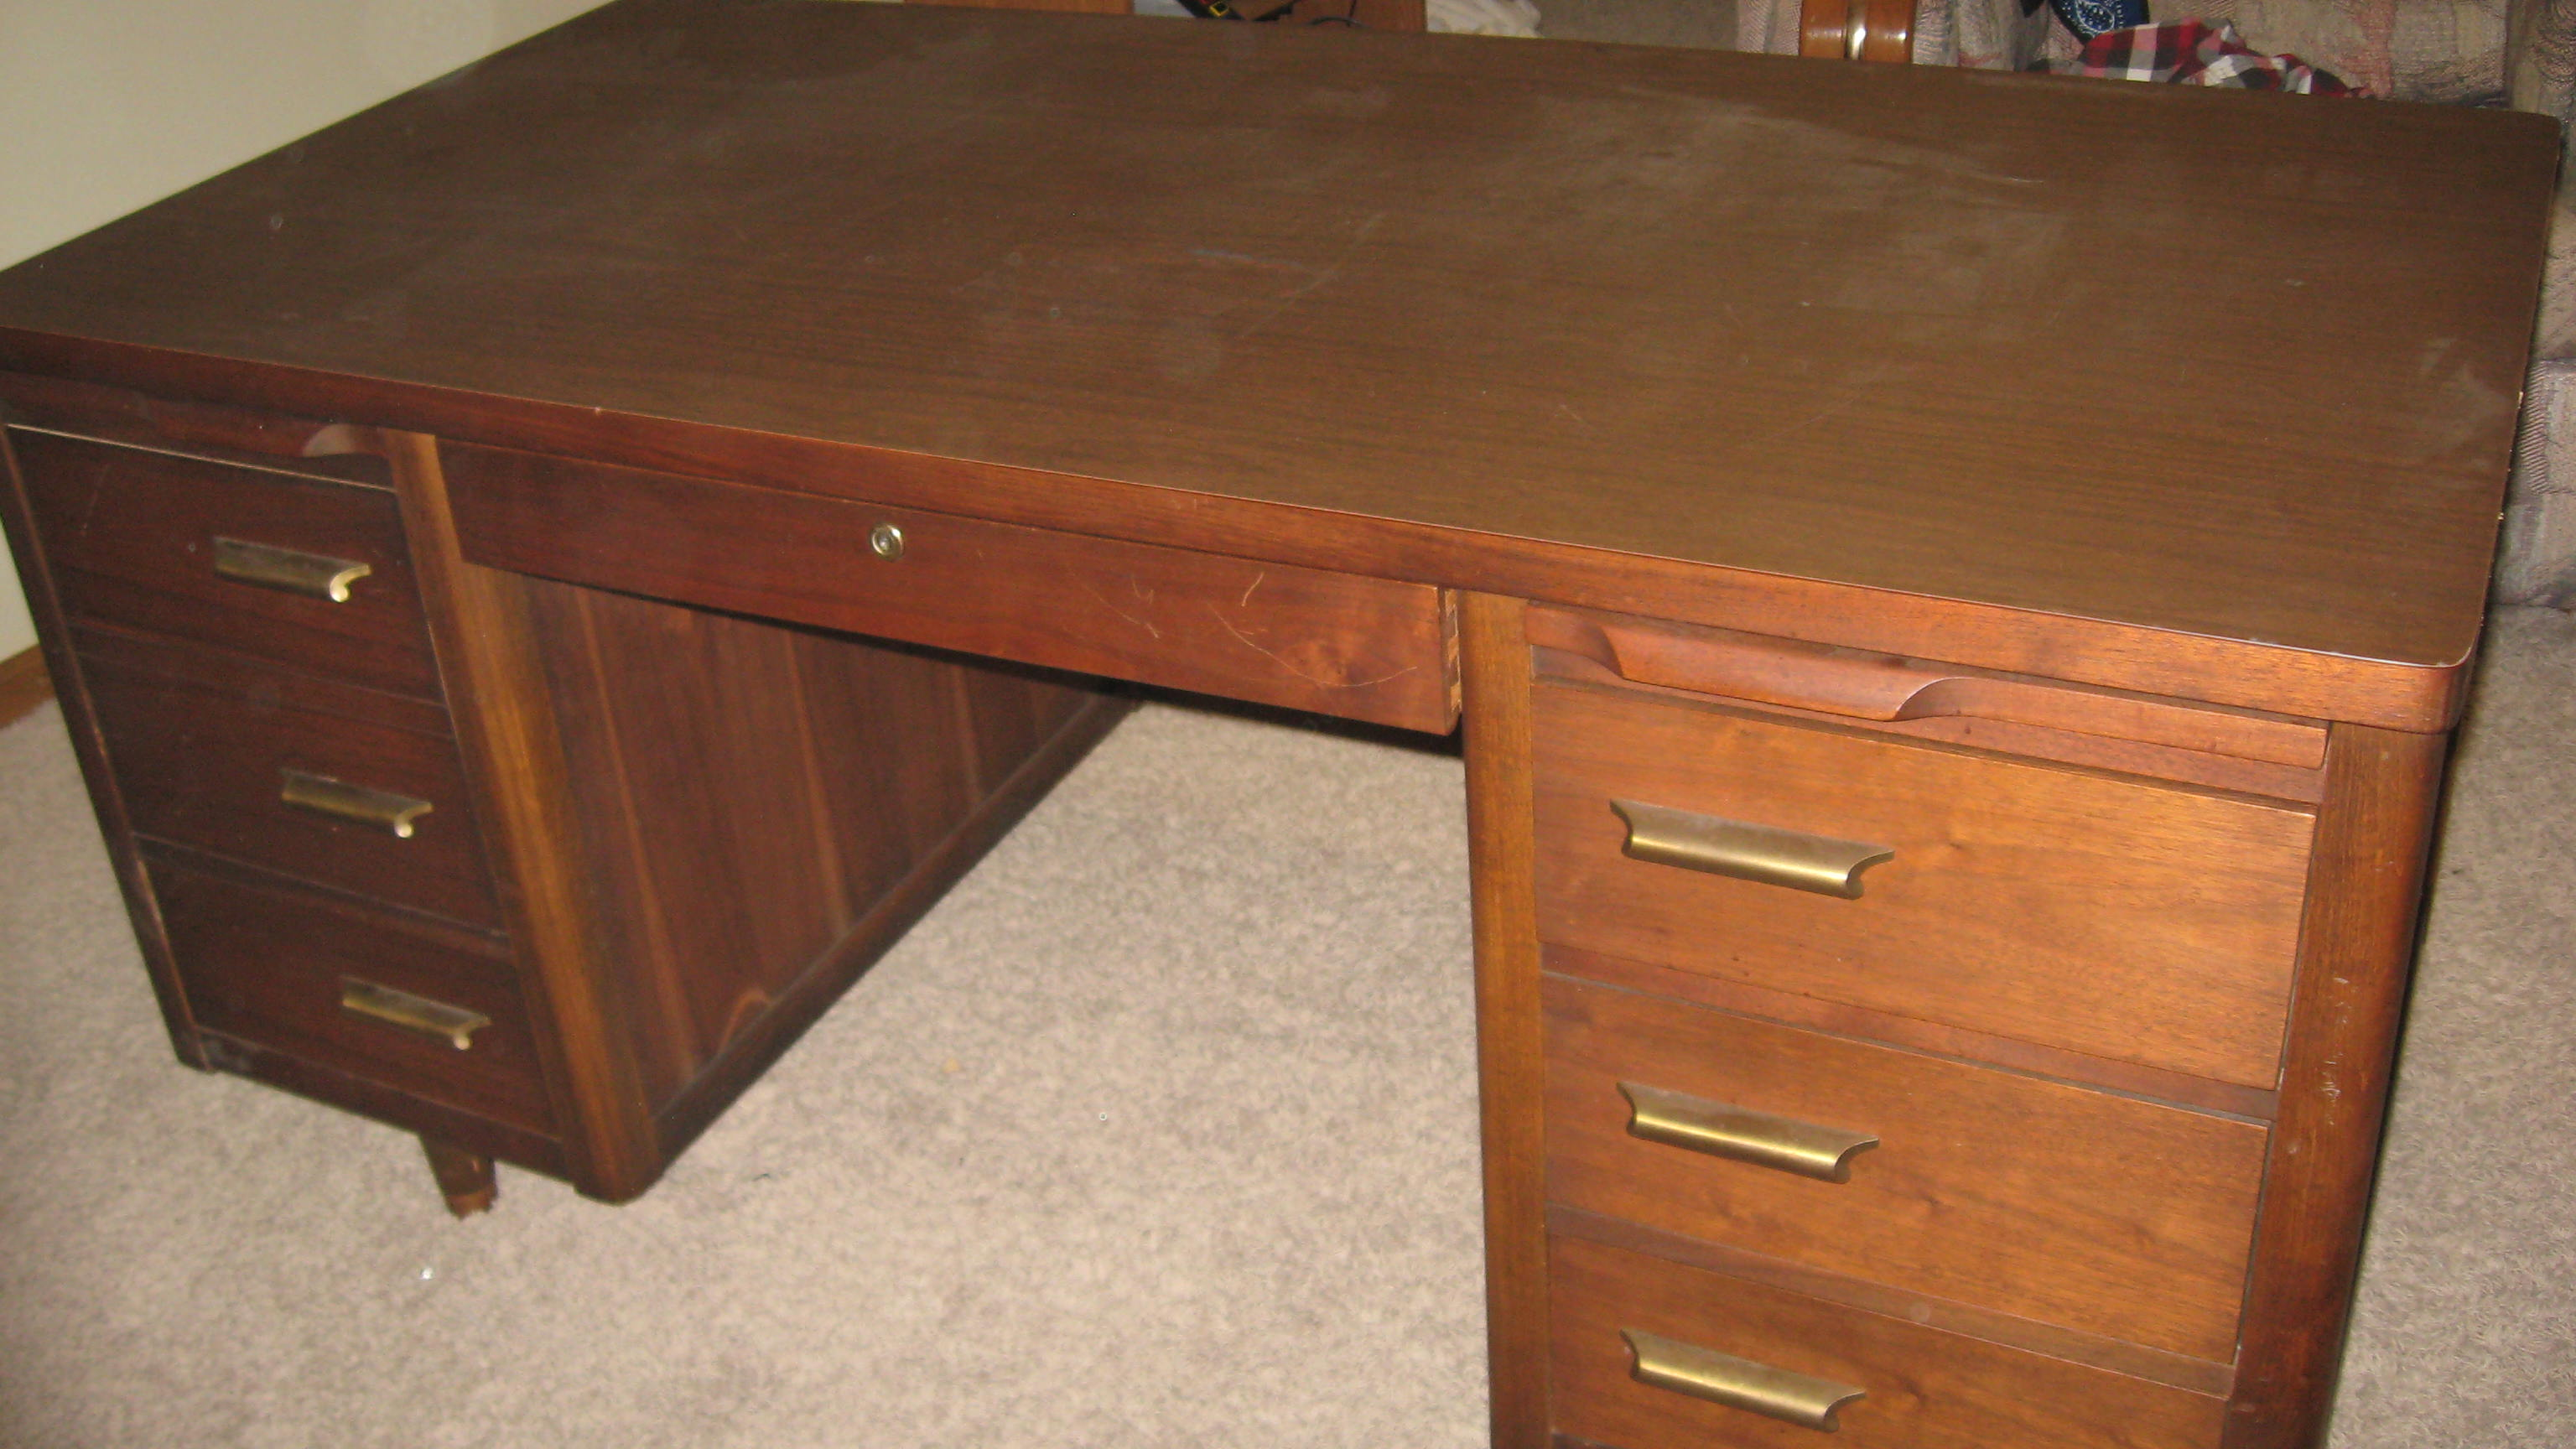 Jasper Office Furniture Desk Antique Appraisal Instappraisal